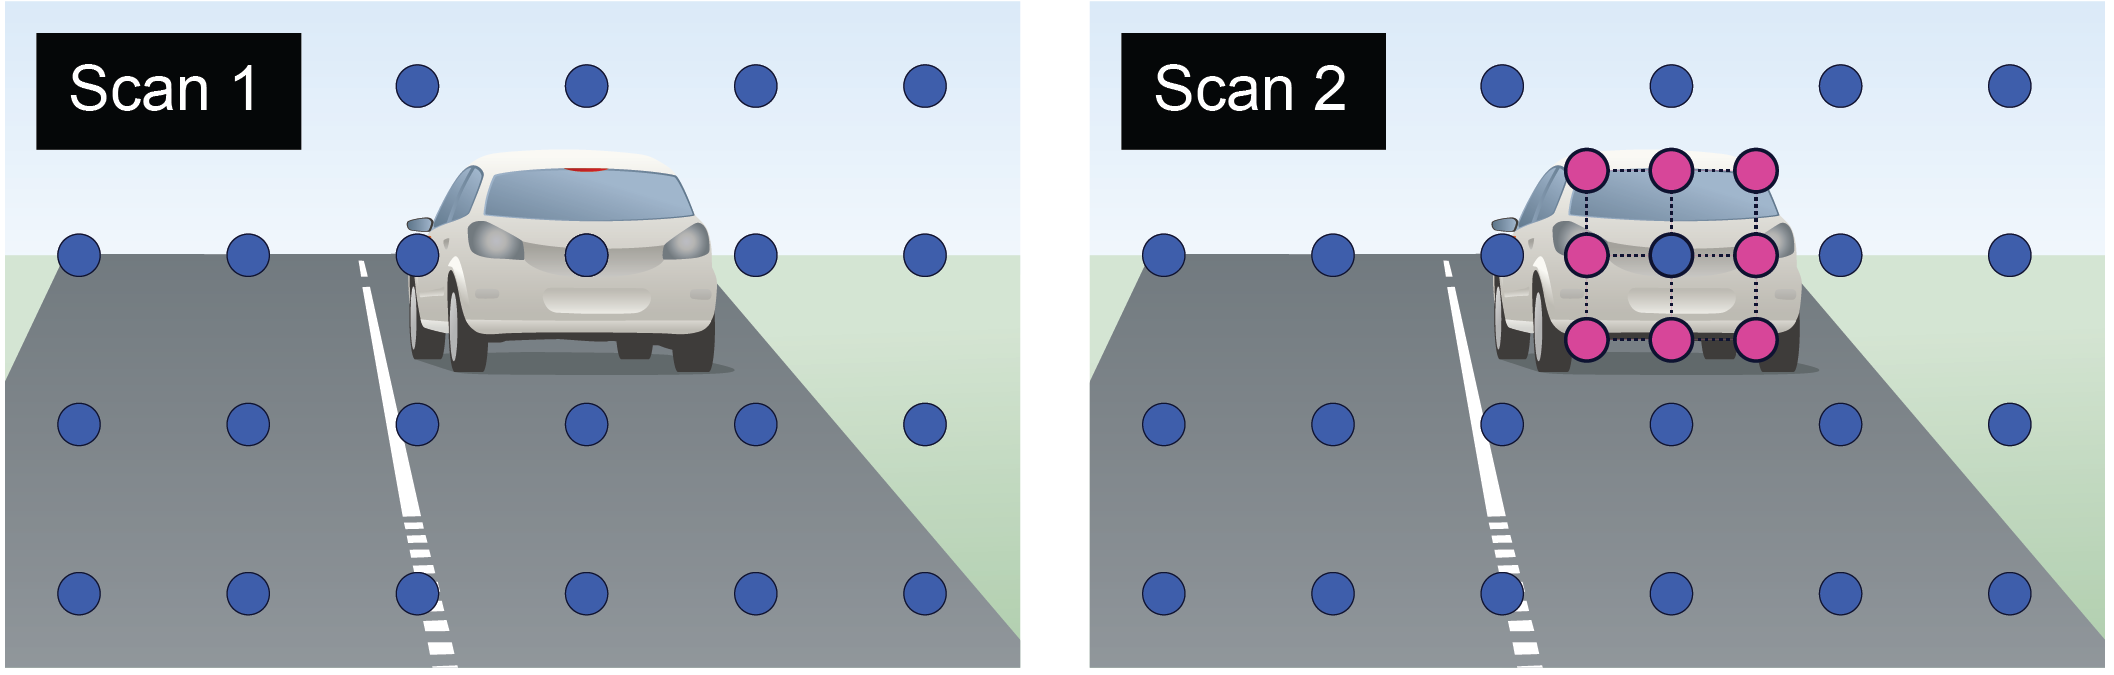 "Figure 3. Packing a dense 3x3 grid around a detect allows the collection of more useful data and greatly speeds up classification. In ""Scan 1"" on the left, we have a single detect on a vehicle. Rather than wait for the next frame to resample this vehicle (as is typical in conventional LiDAR) we instead quickly form a Dynamic ROI (as seen in ""Scan 2""). This is done immediately after the initial single detect, and before completing the next scan."